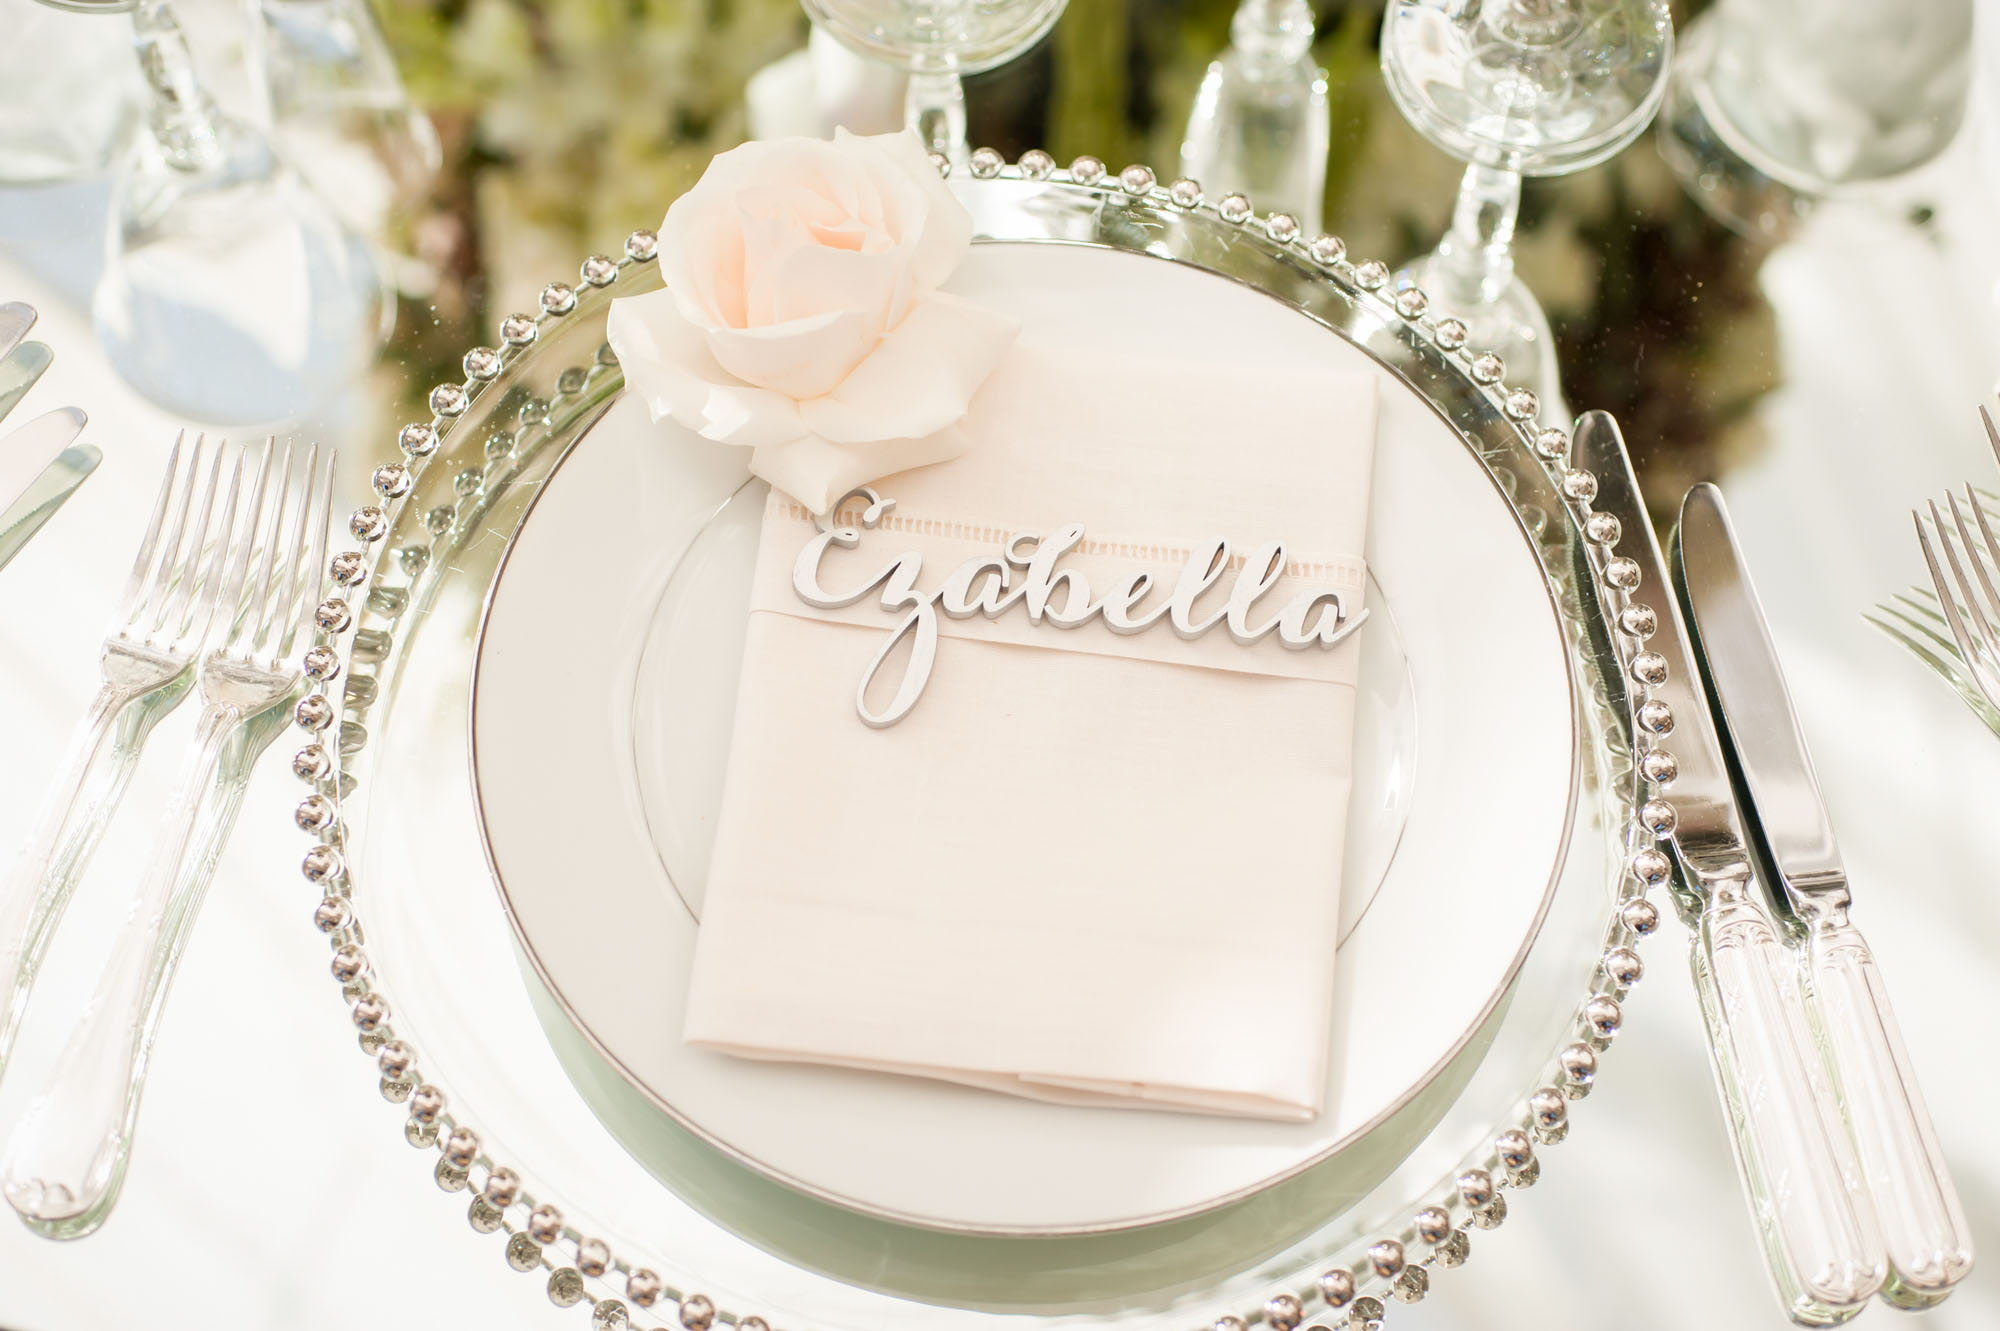 laser-cut place card for wedding